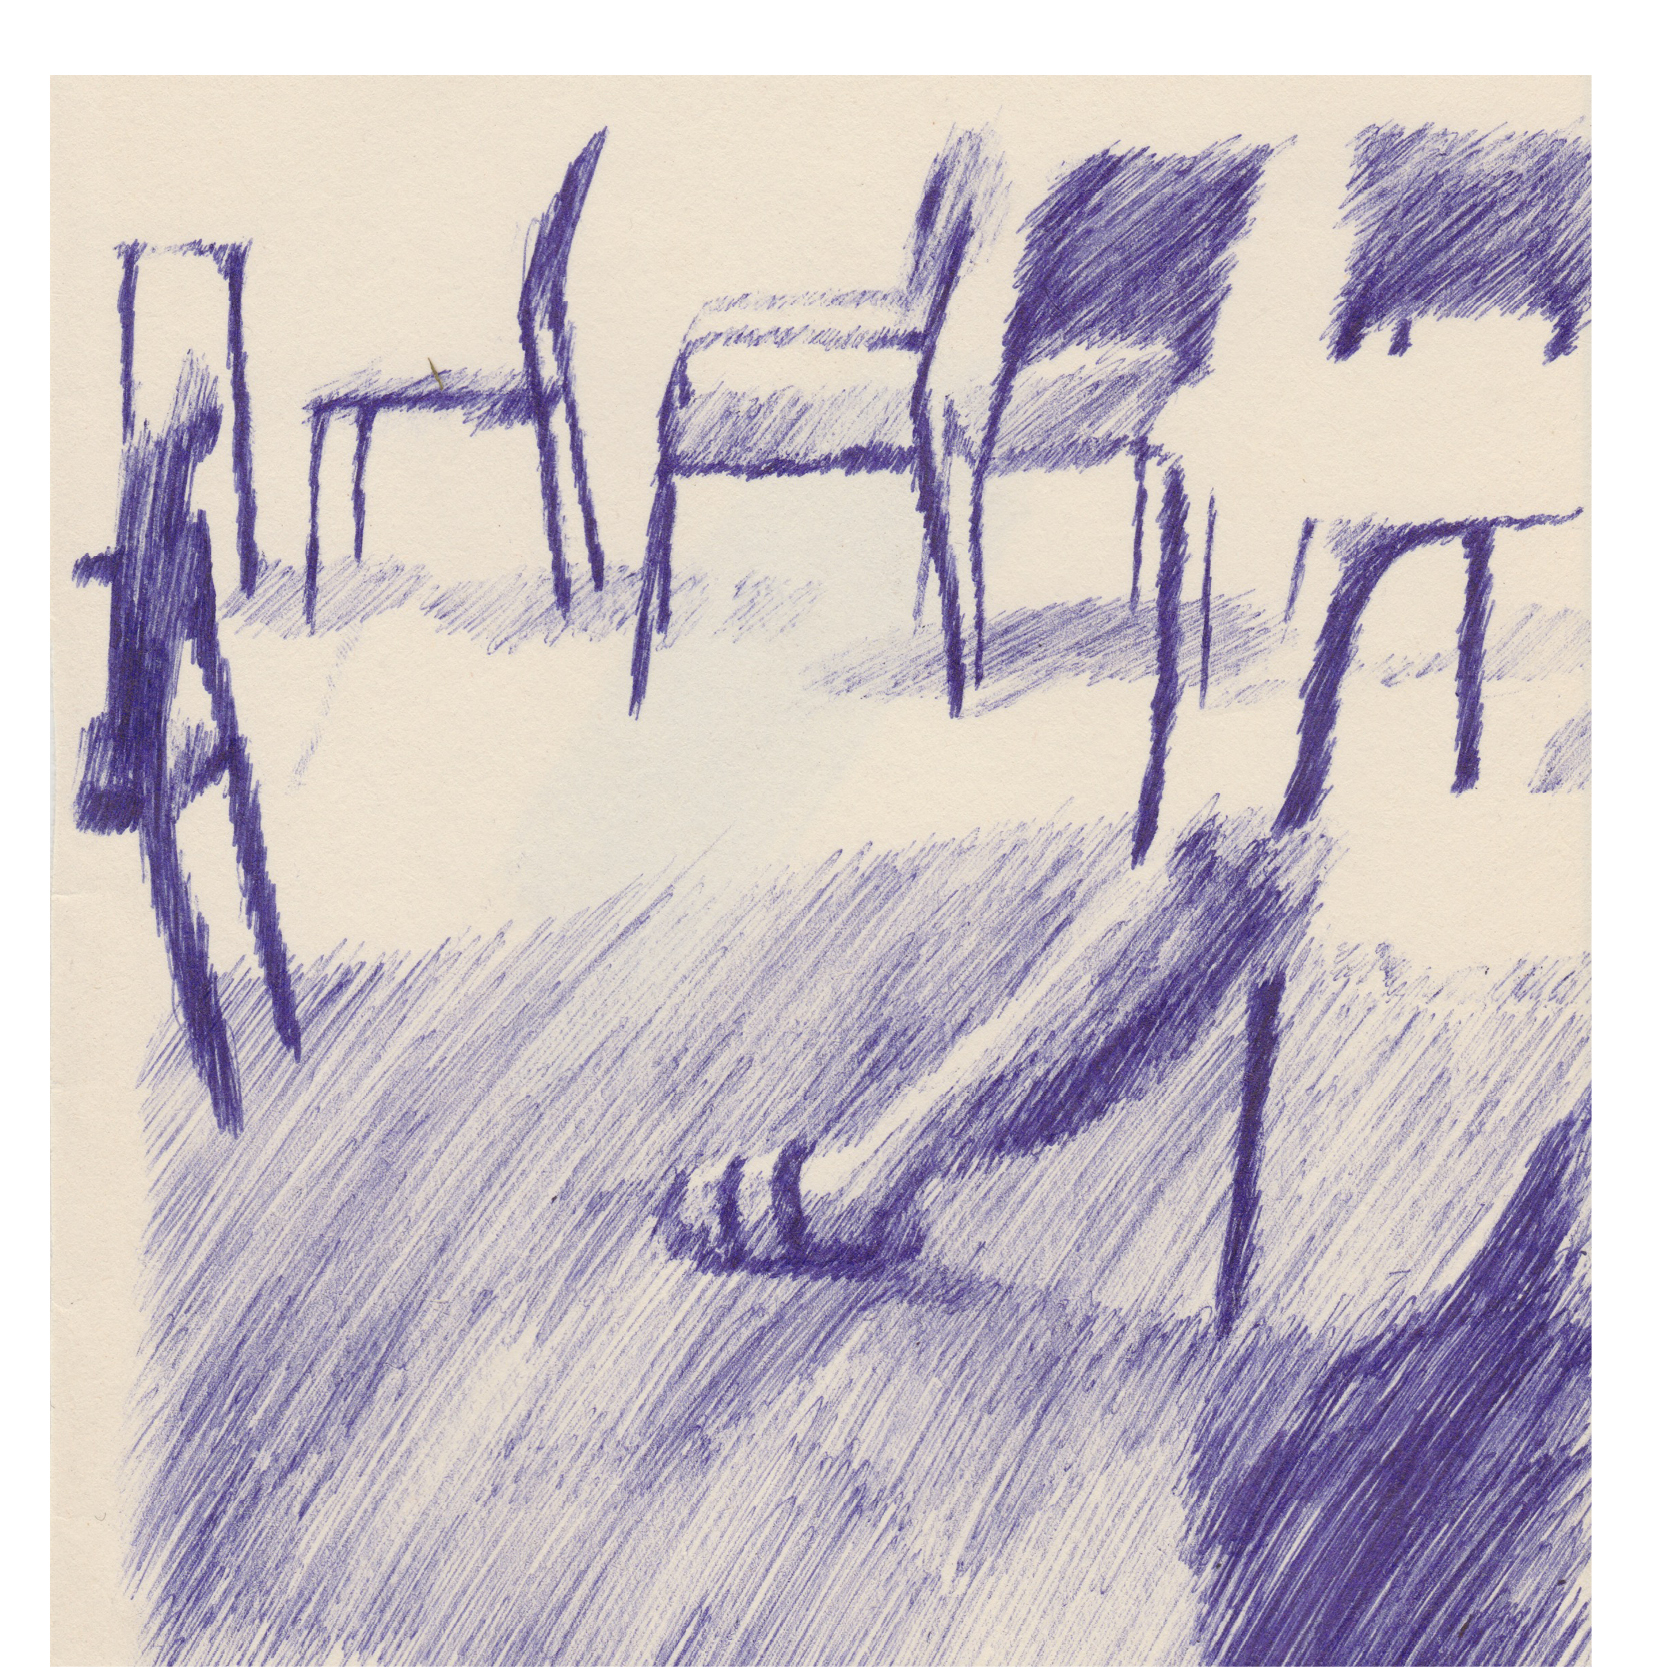 Hot Seats_Biro on Paper_14.8 x 21cm, 2018_